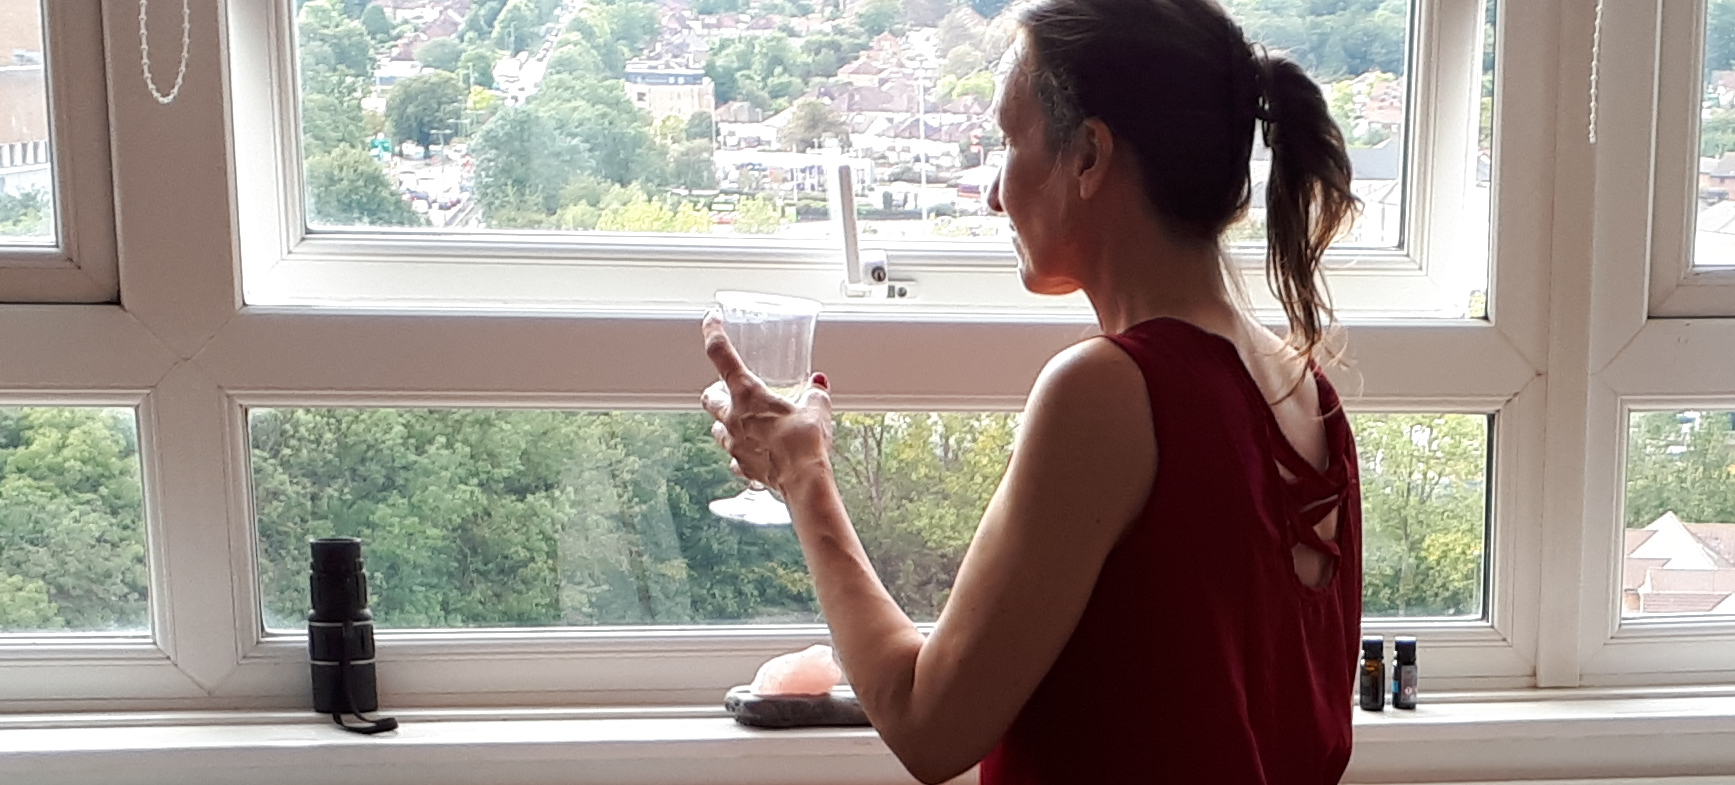 woman with an empty glass